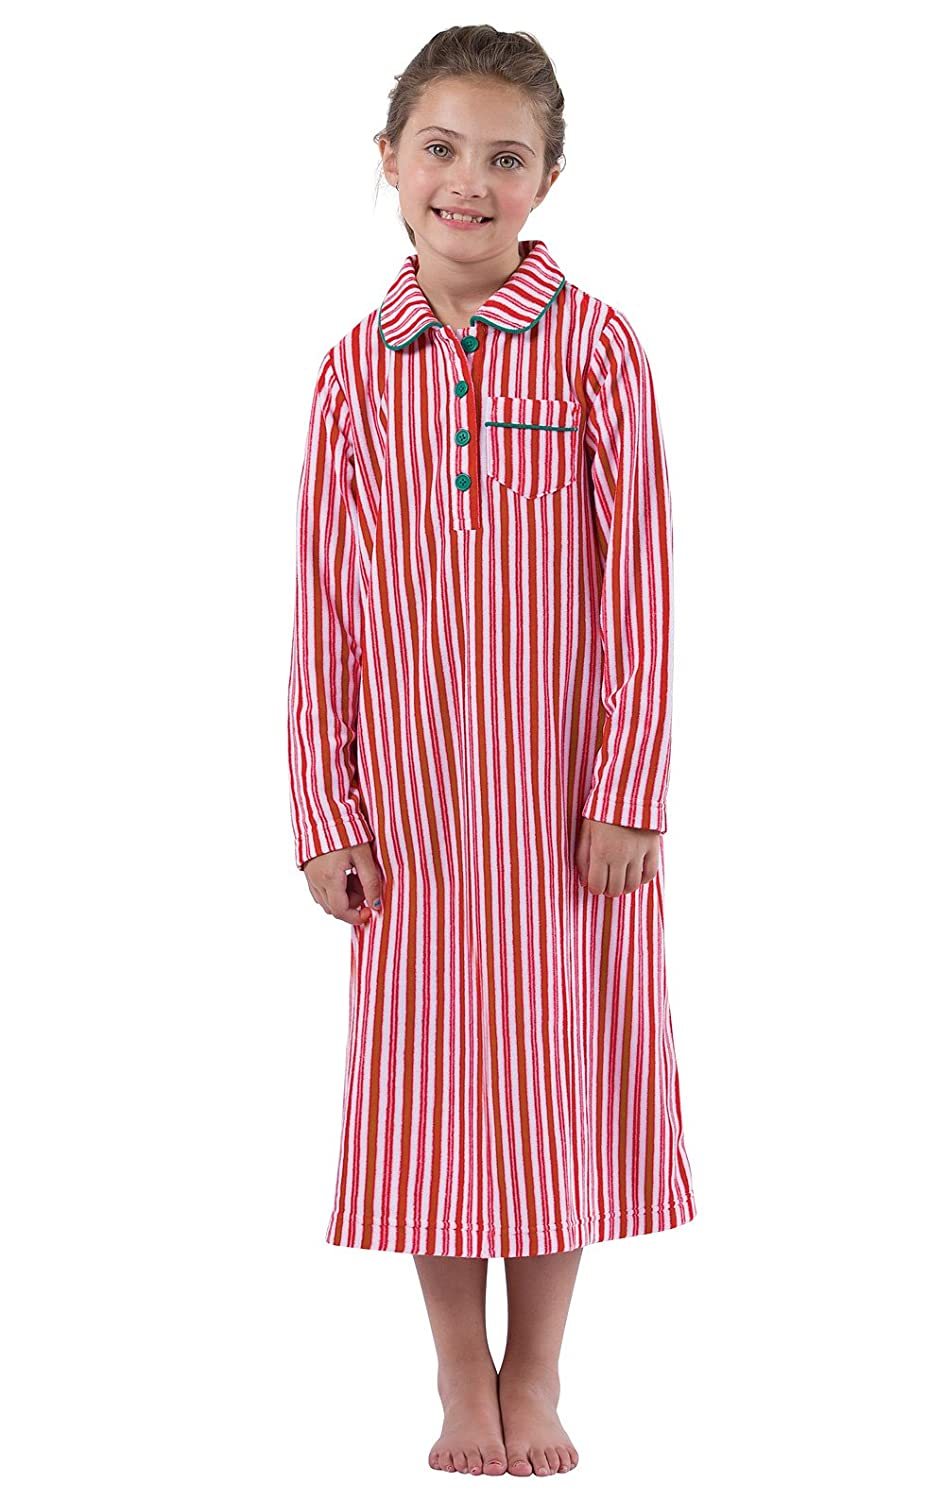 PajamaGram Candy Cane Fleece Nightgown in Holiday Red/White, Big Girls' Big Girls' GKPJ05916